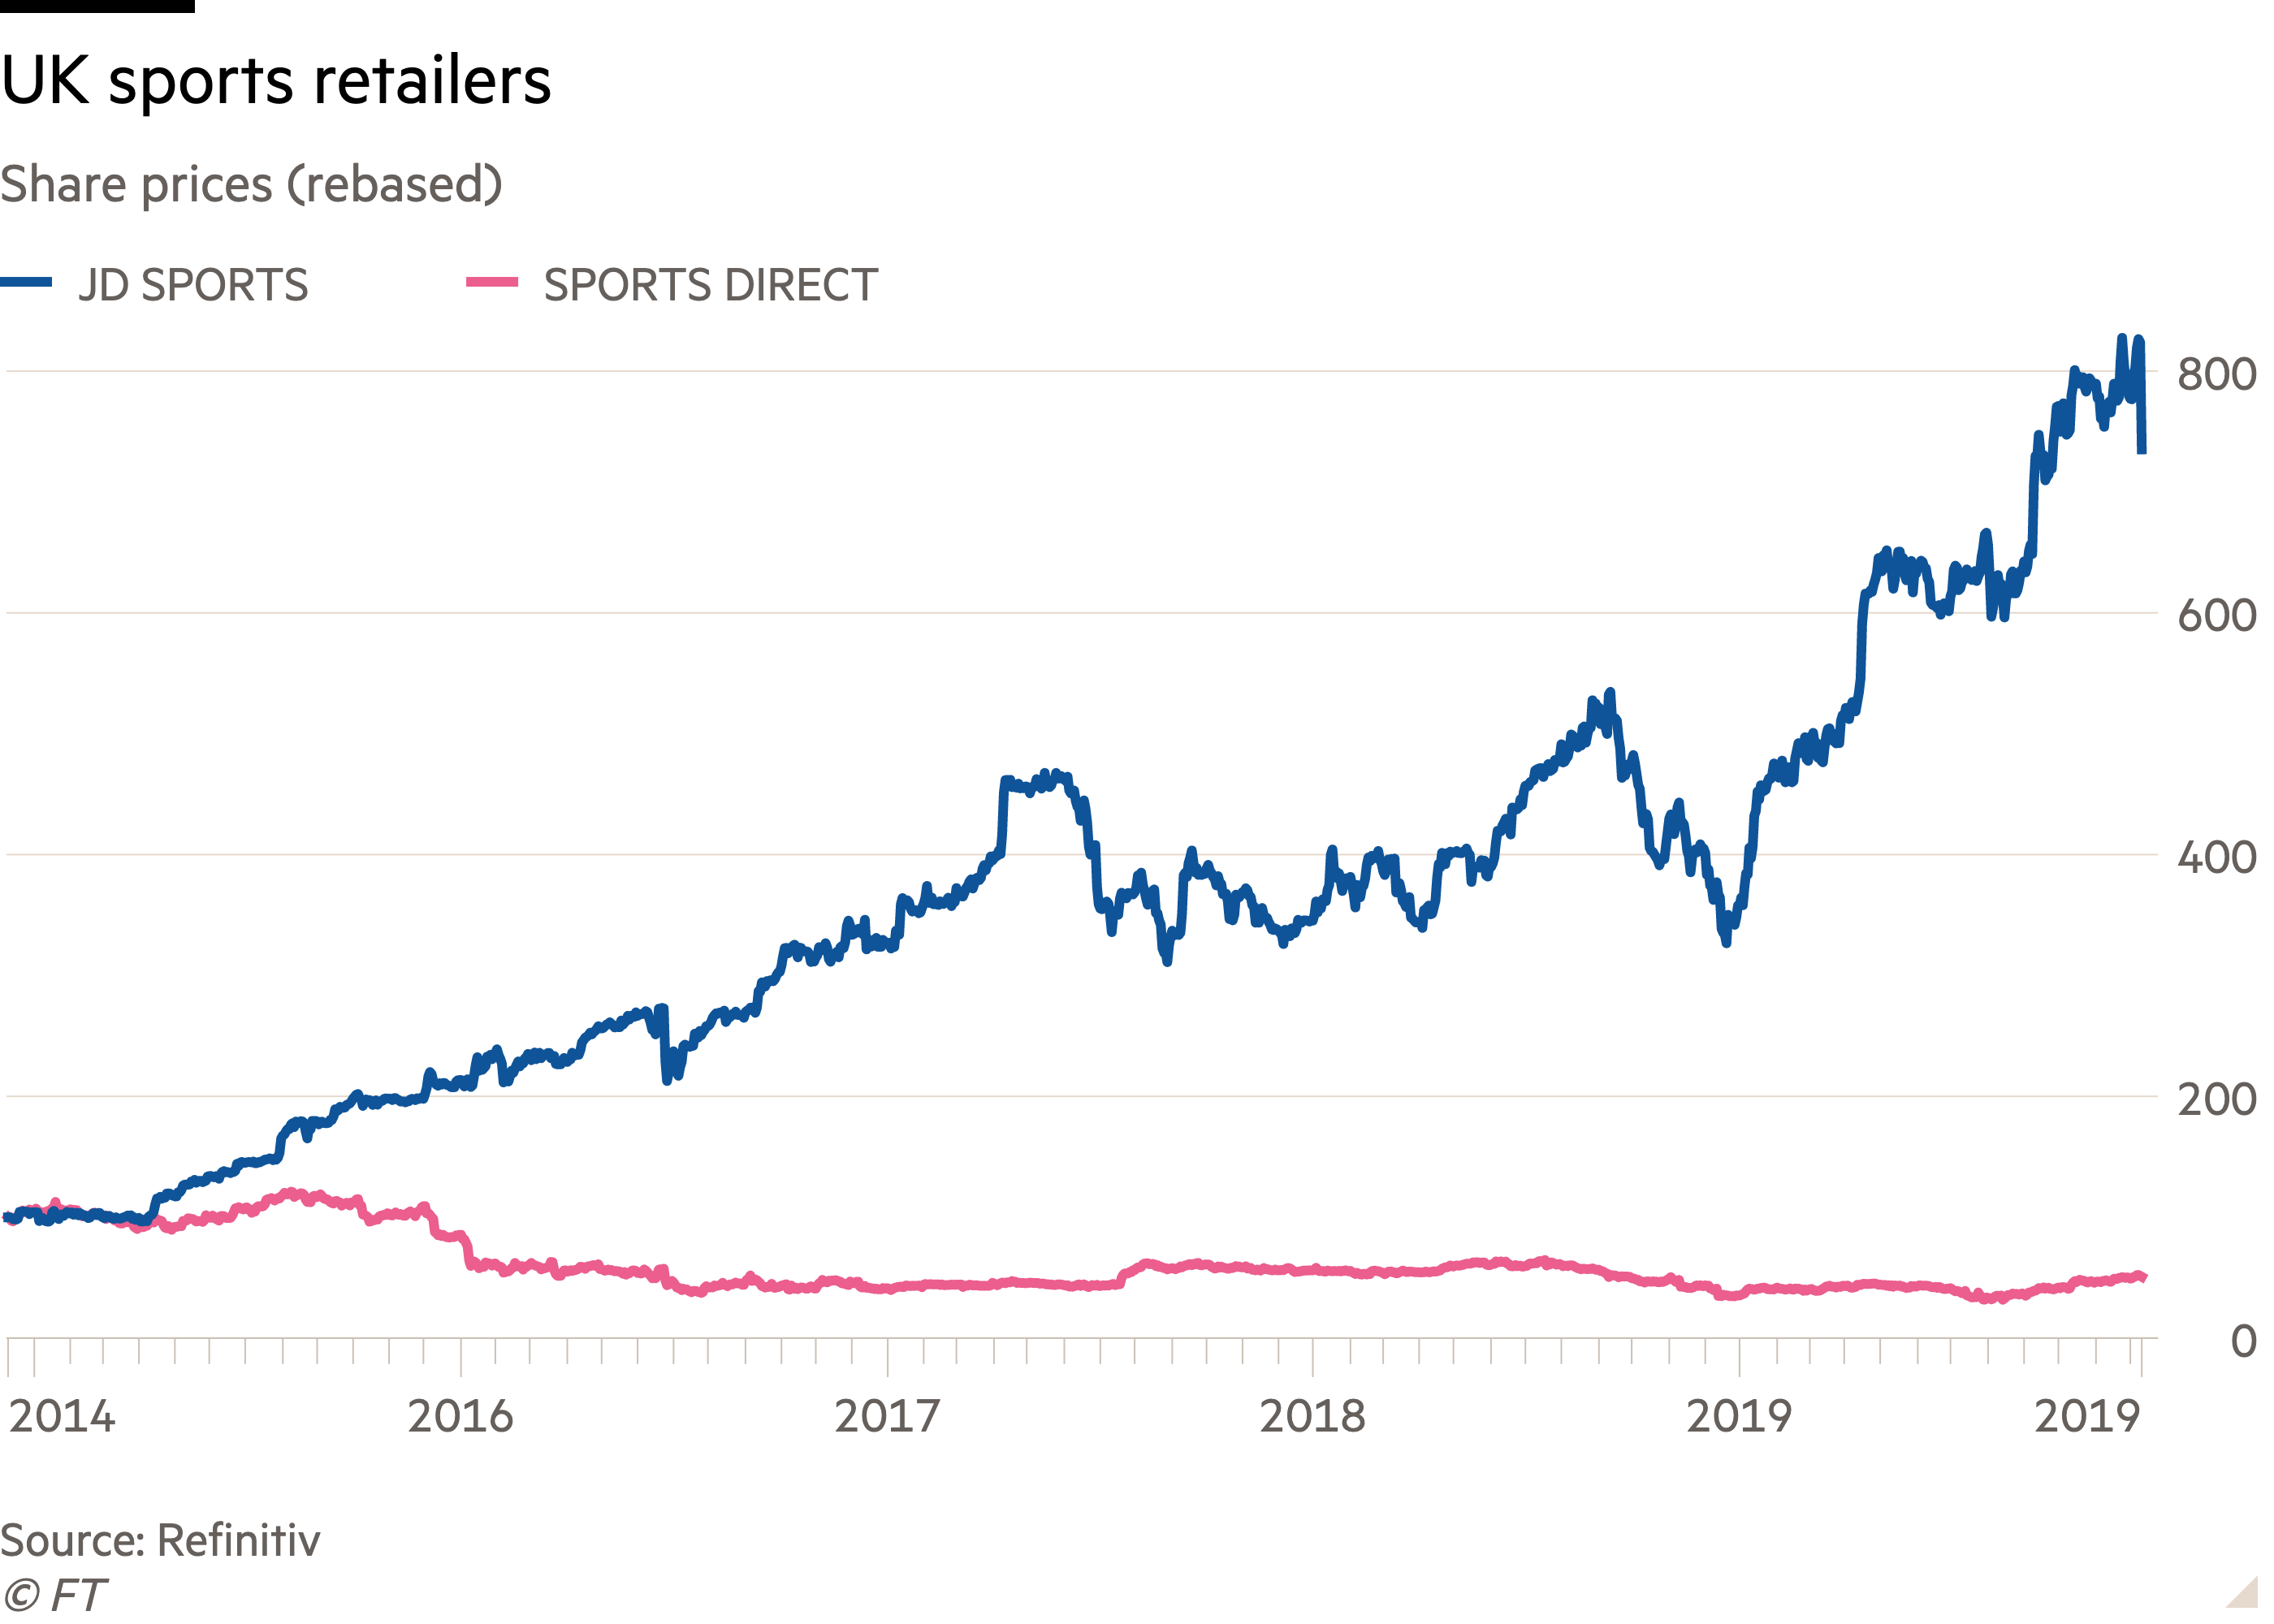 Line chart of Share prices (rebased) showing UK sports retailers